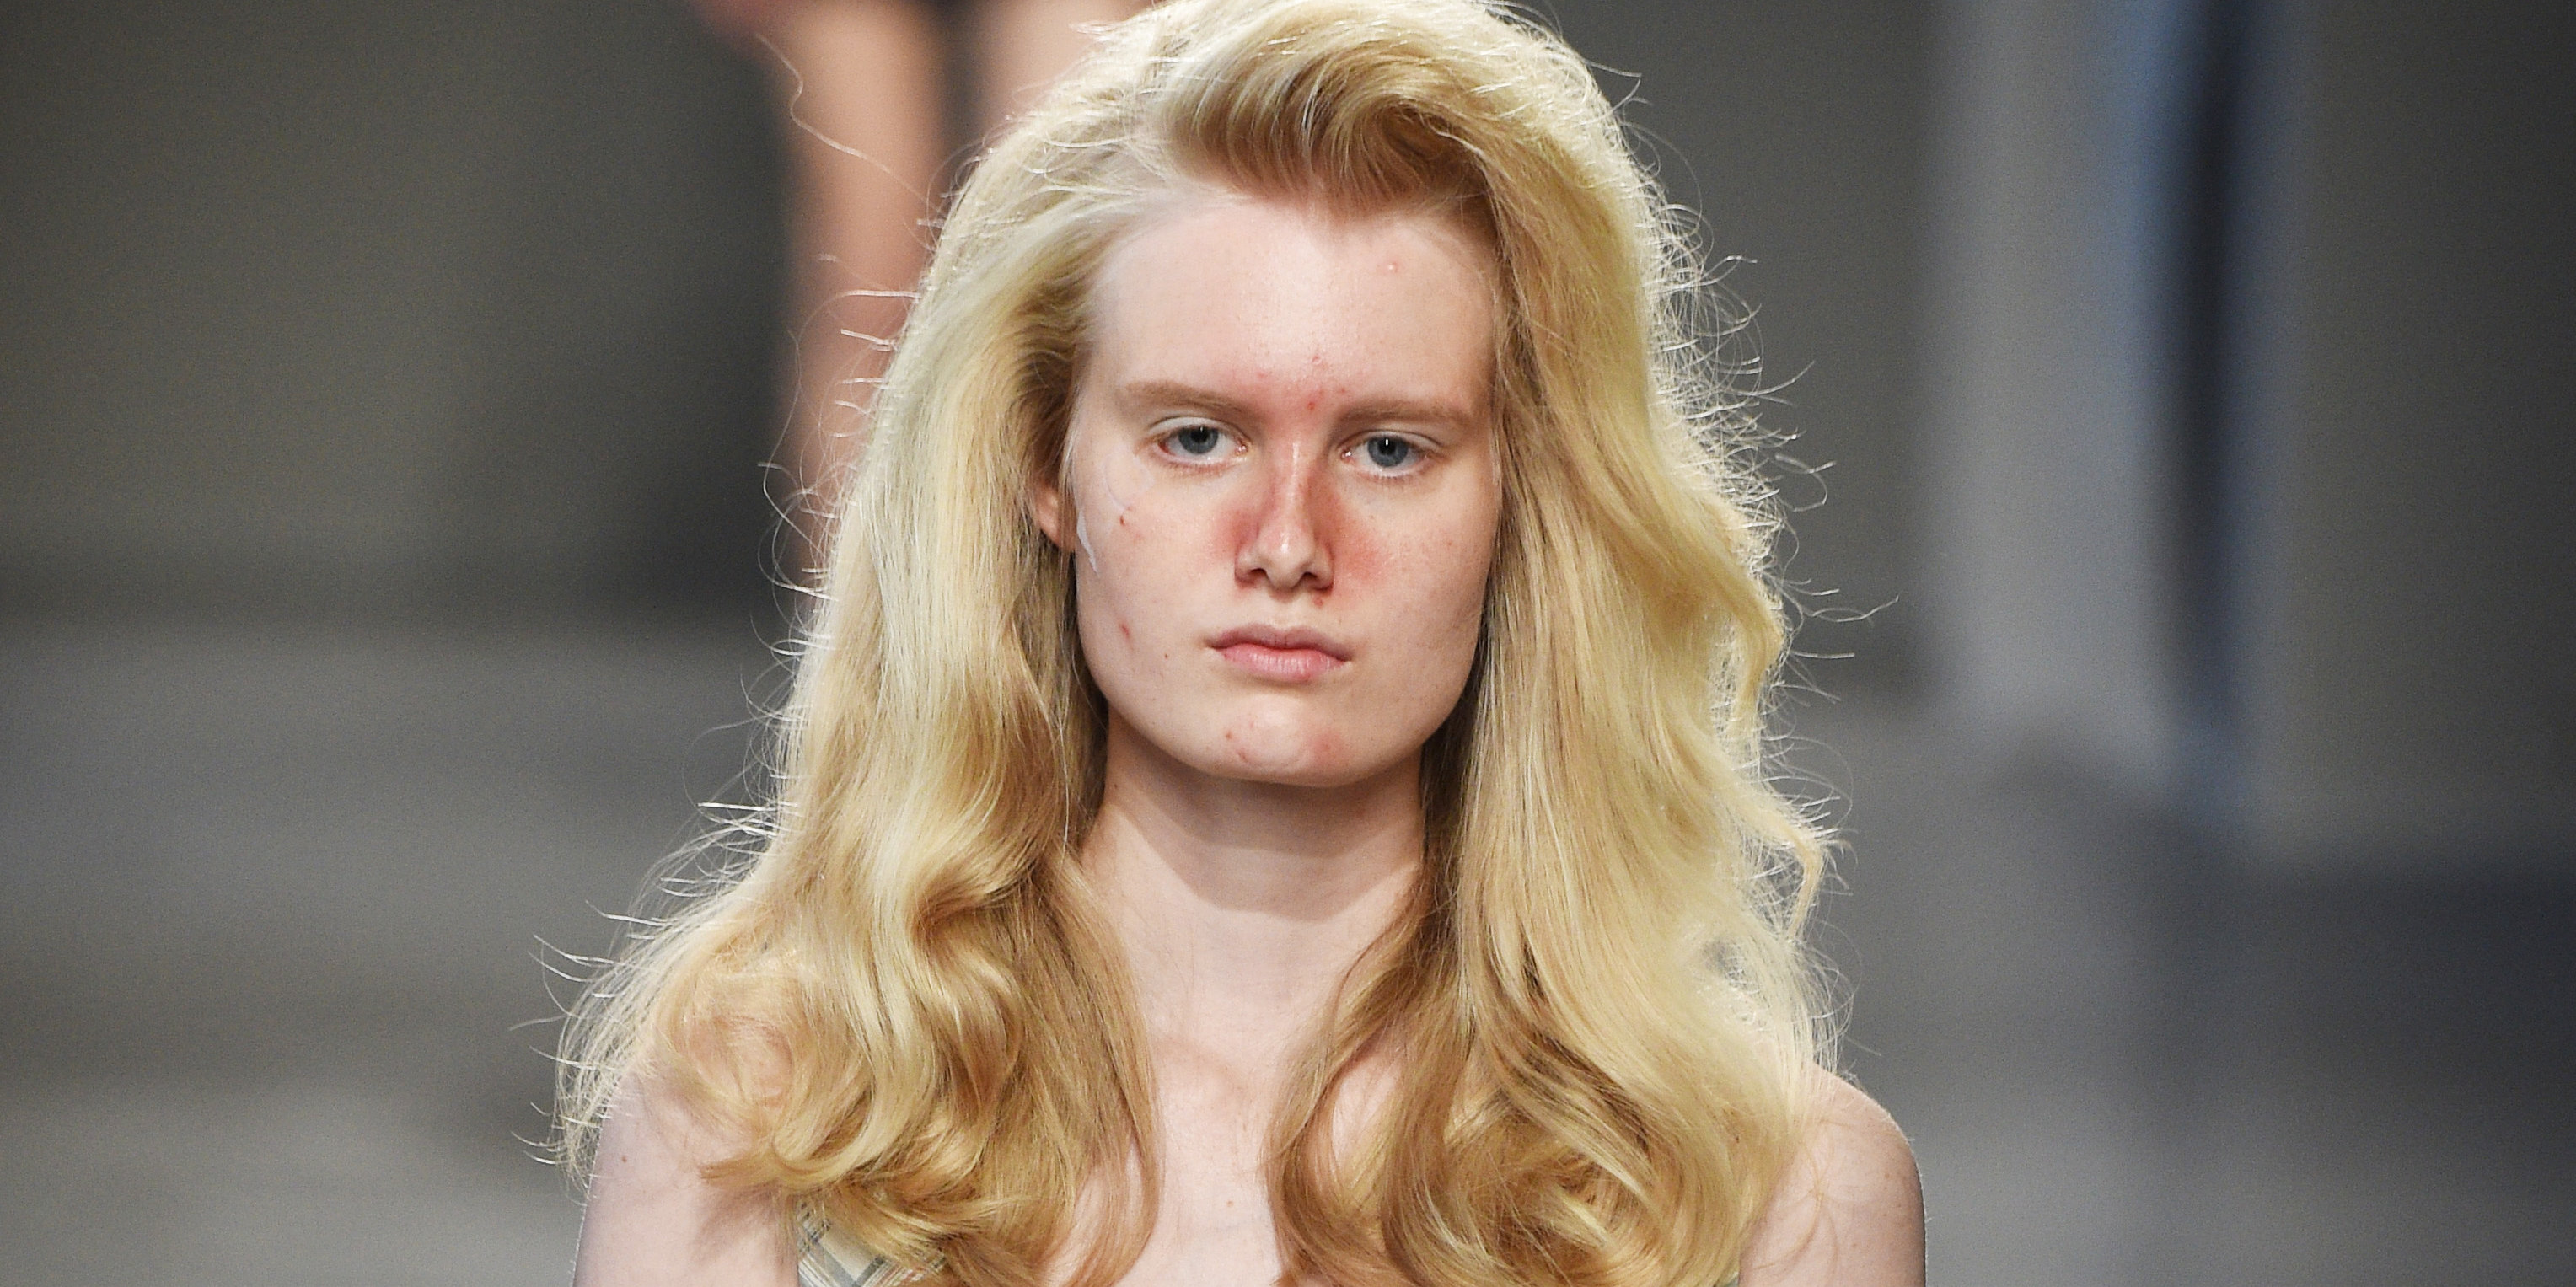 This Milan Runway Show Featured Acne And Blemishes On The